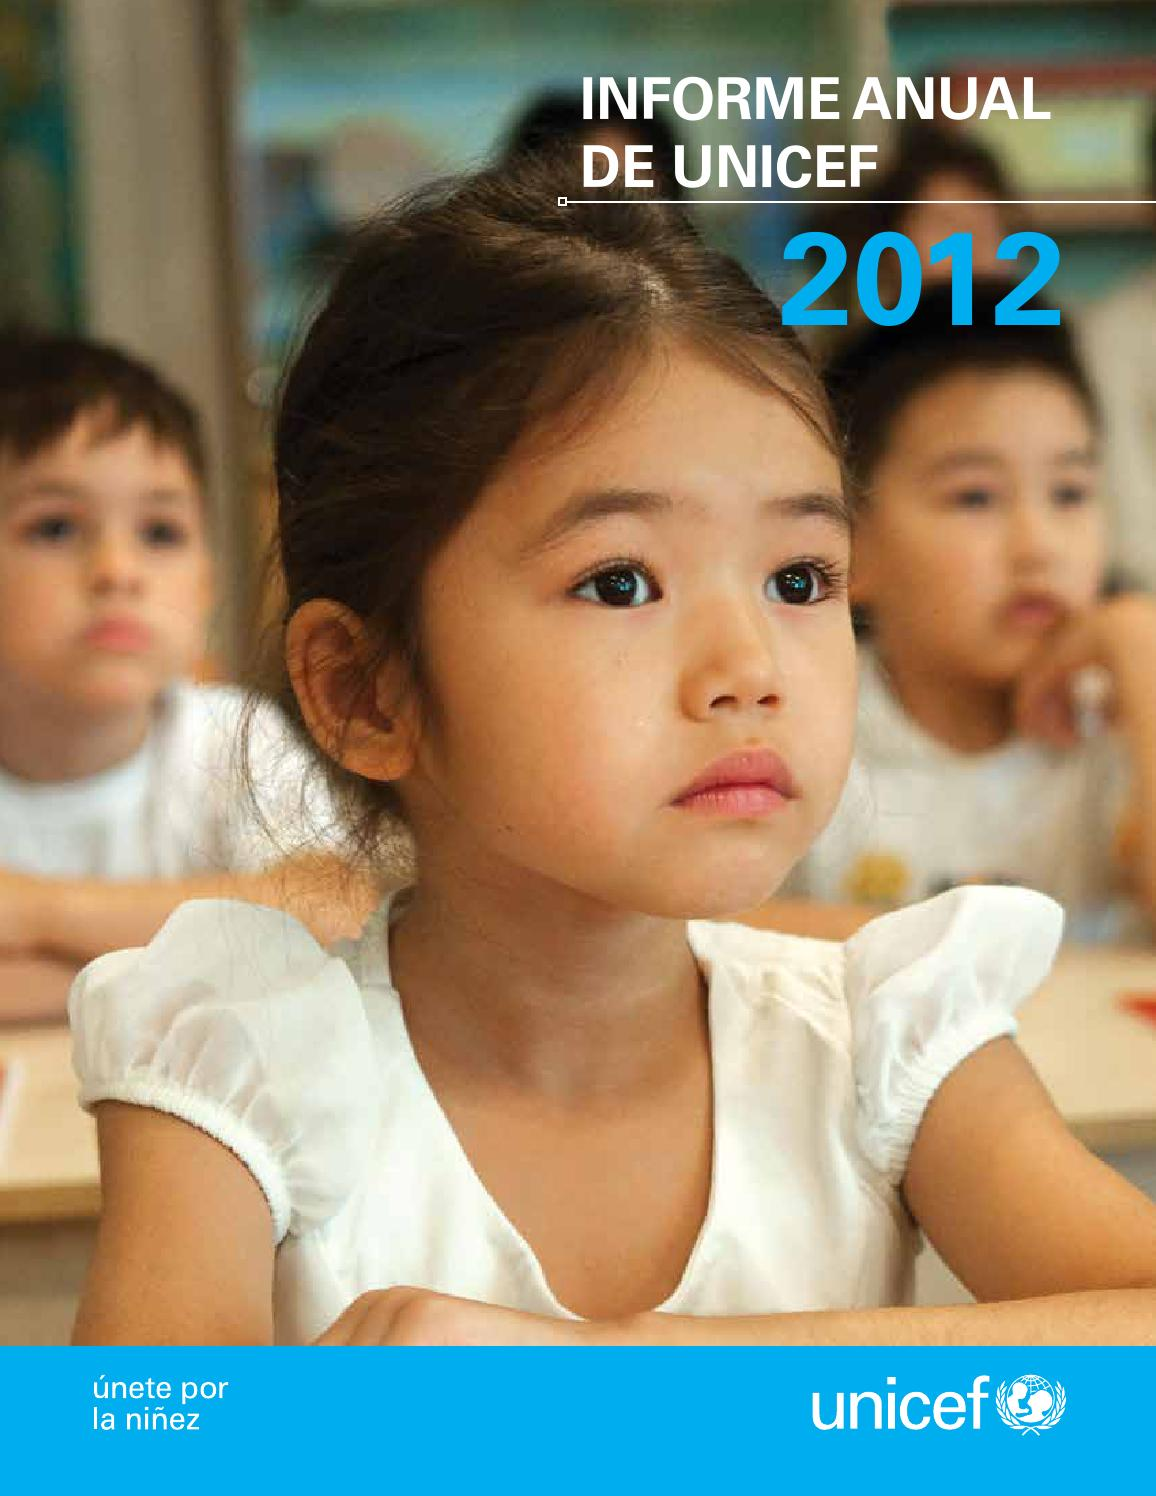 Informe Publications Issuu De York By New Unicef Anual 2012 5qA3j4RcL